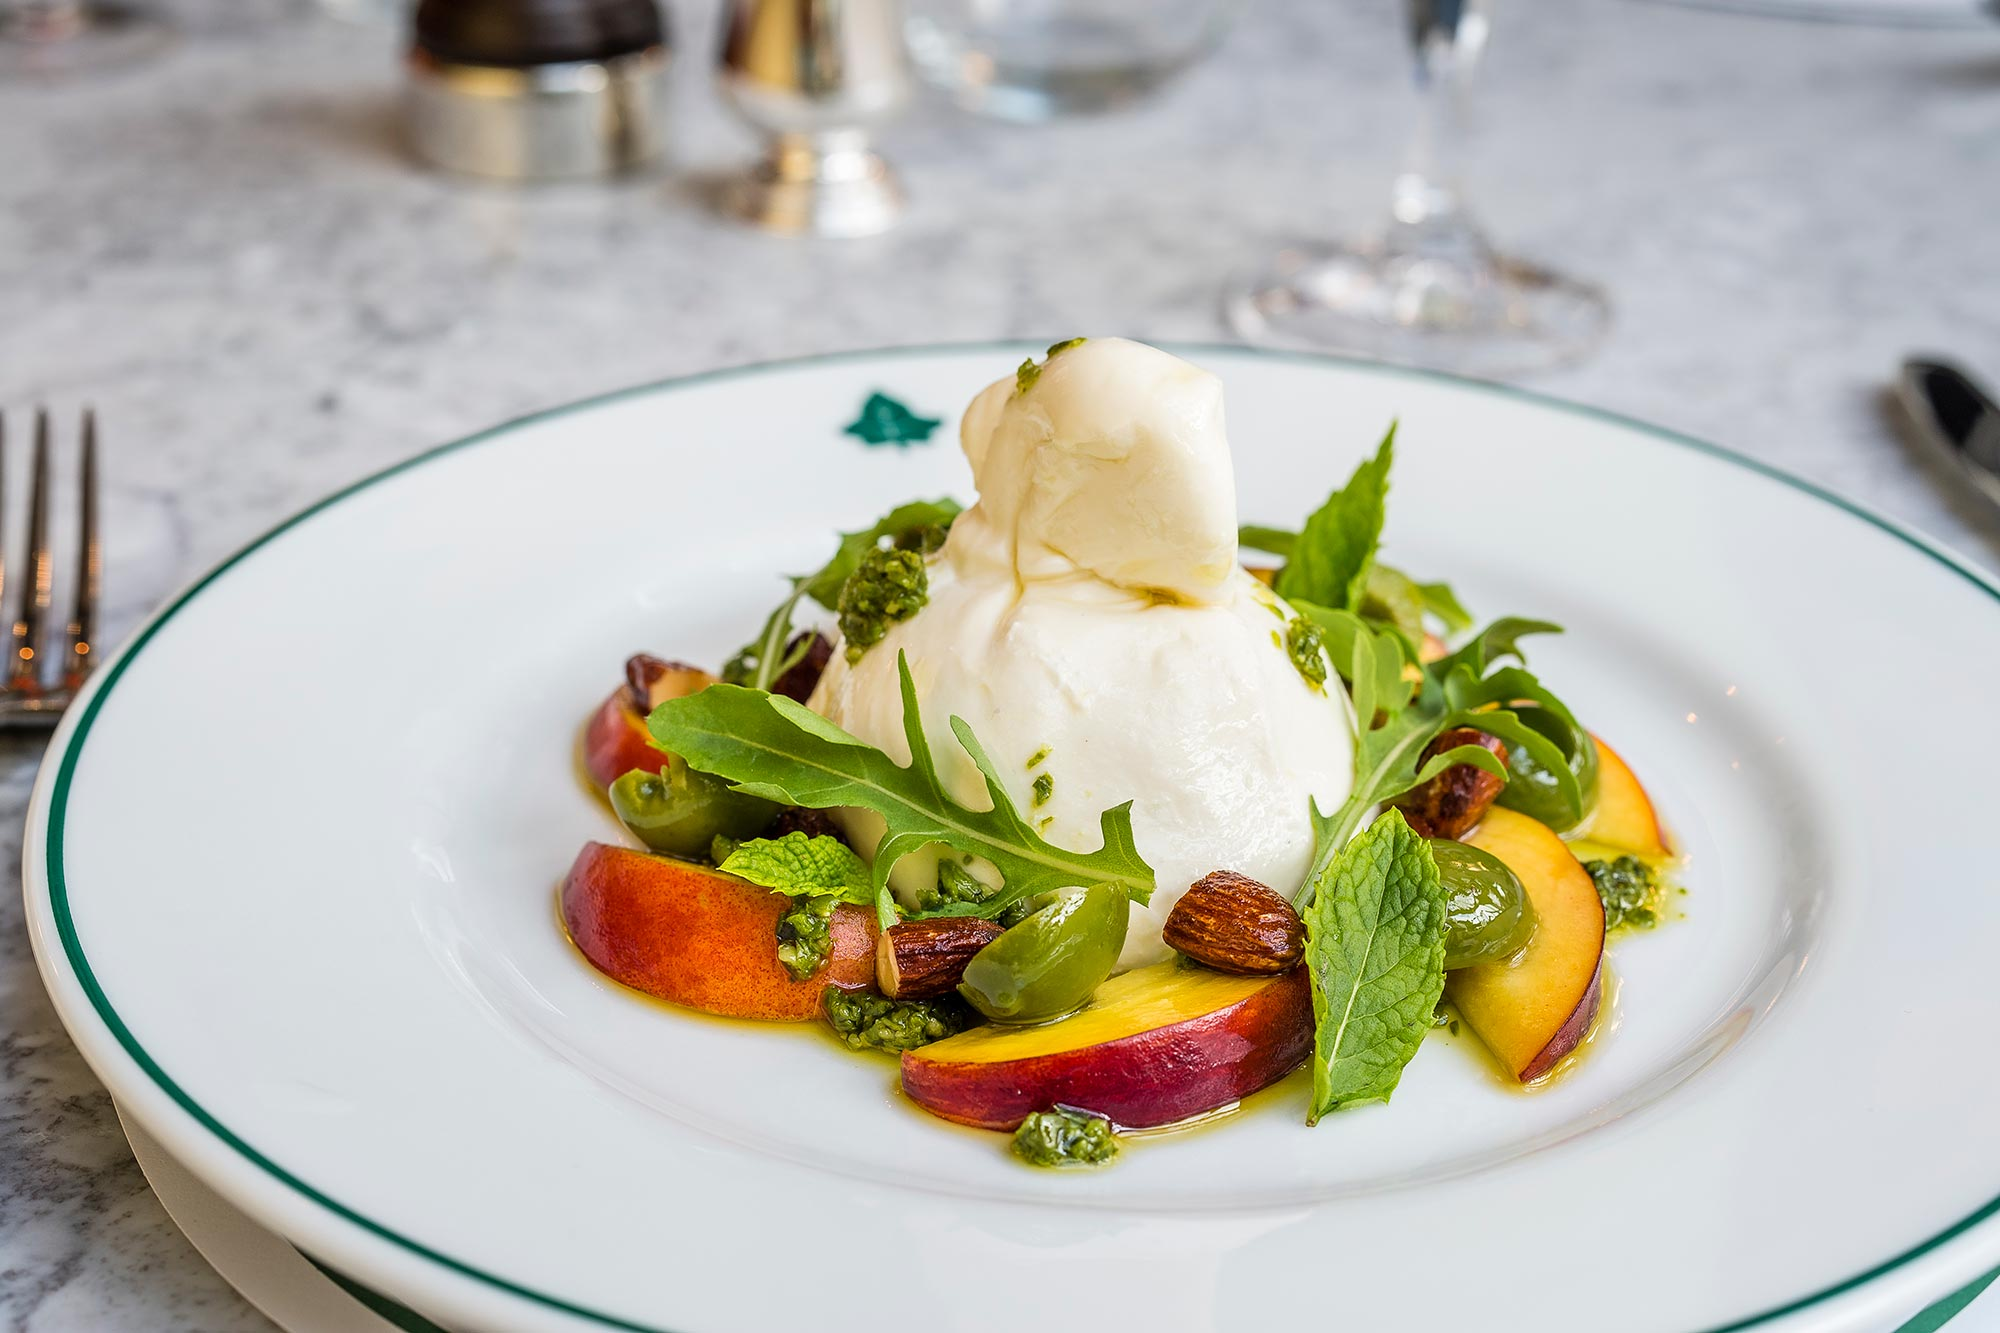 Burrata with Nocellara olive, pesto, rocke and almonds - The Ivy Kensington Brasserie - The Ivy Kensington Brasserie